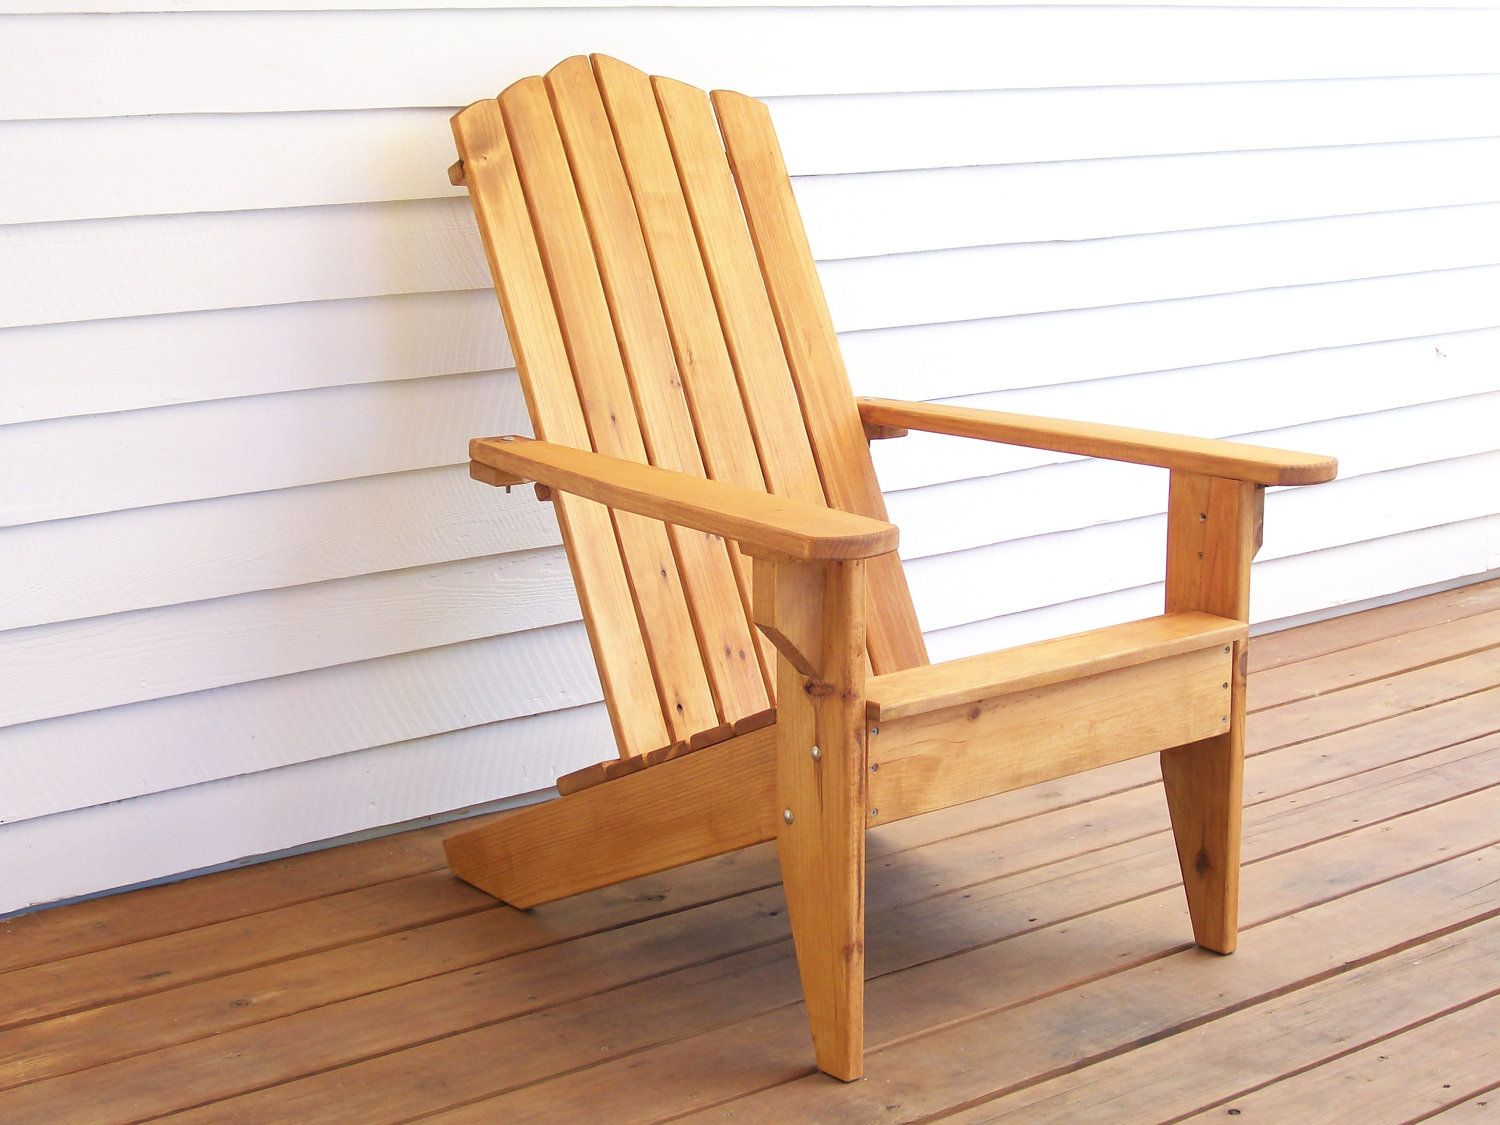 Adirondack Wood Chair, Adirondack Furniture, Outdoor Wood Furniture, Wood Deck  Furniture, Patio Wood Furniture, Deck Chair, Garden Chair